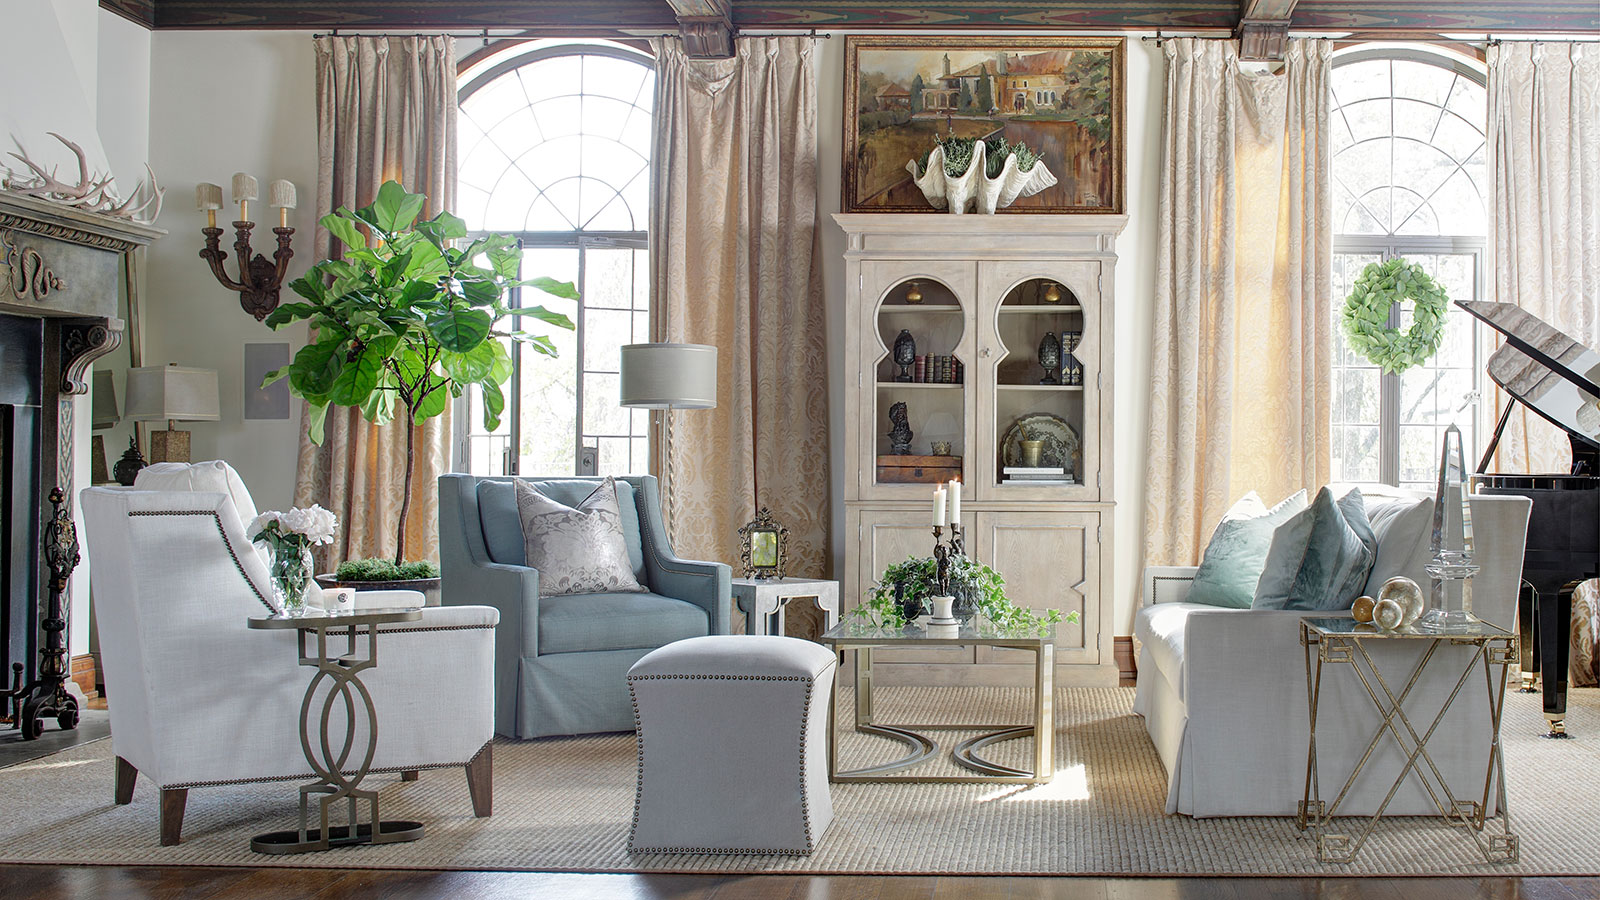 Reflections on transitional furniture style gabby - Easy transitional home design ...